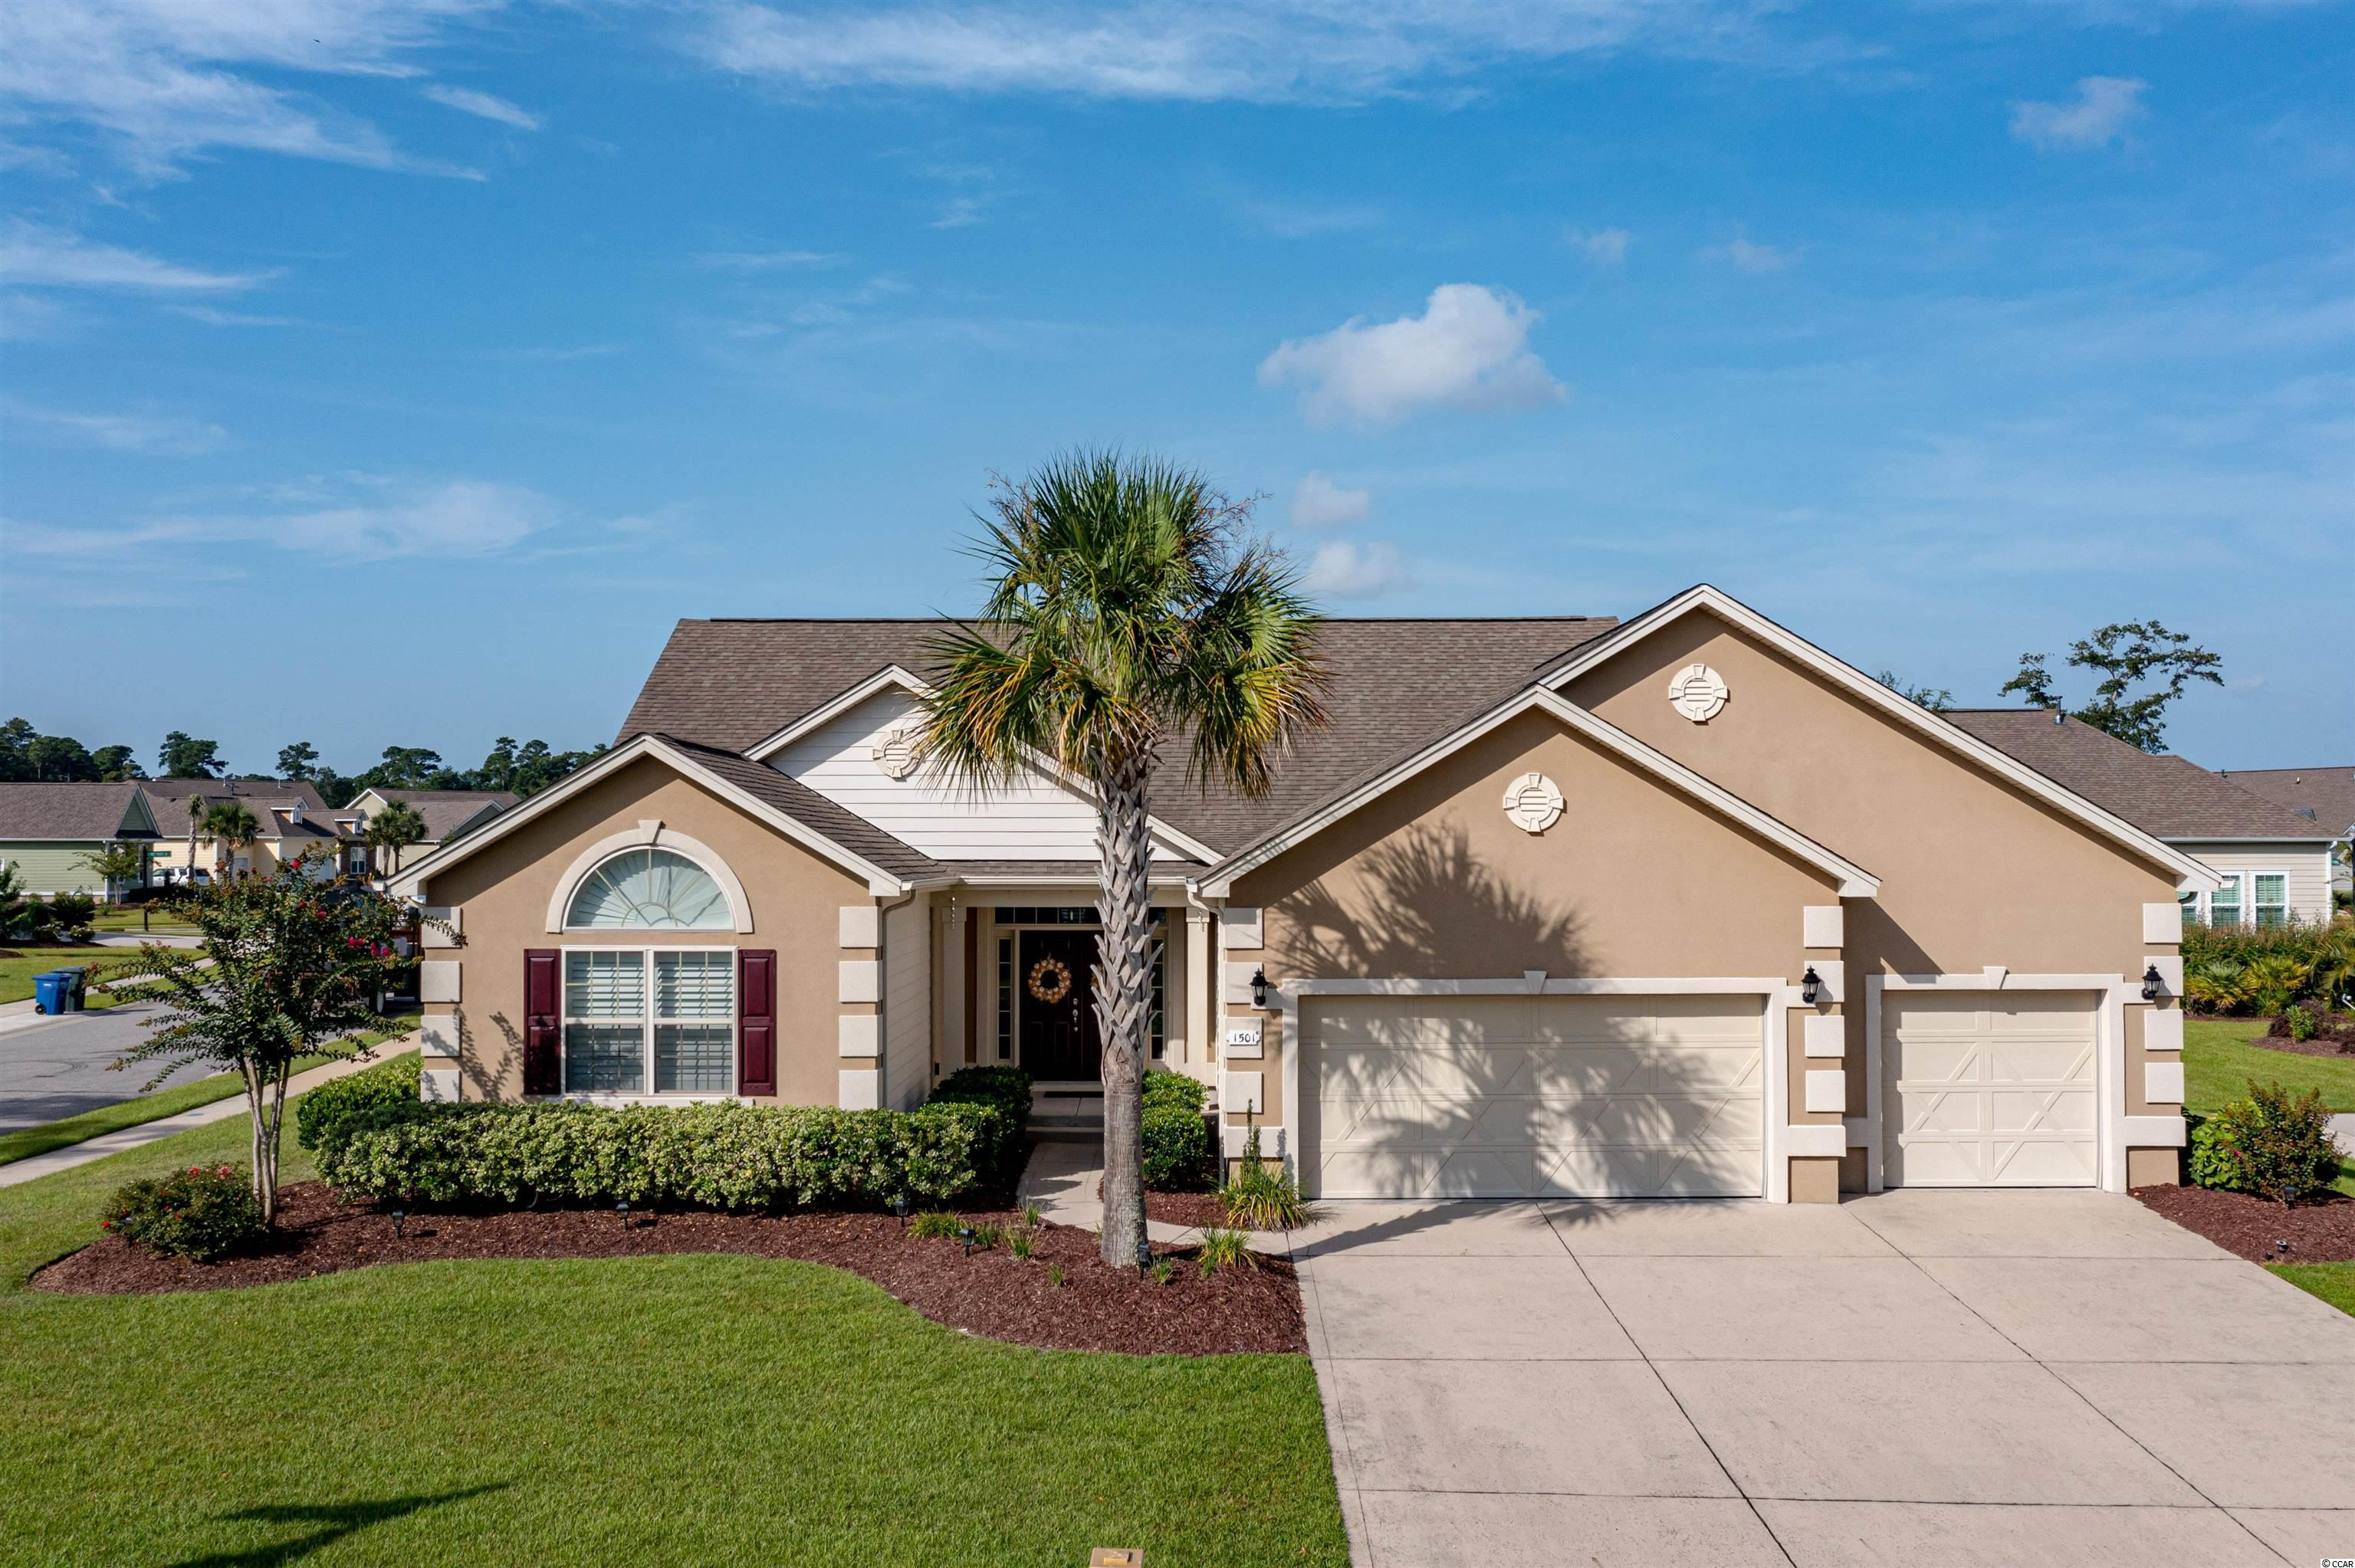 """BEST of BOTH WORLDS in North Myrtle Beach! Are you looking for ground floor living, yet you still want to be close to the BEACH? This 3BR/2.5BA/3CG Home in SEABROOK PLANTATION is located in a gated community, EAST OF HWY 17, walking distance to Coastal North Town Center (Publix, TJ Maxx, Dick's Sporting Goods, Hobby Lobby, Homegoods, Hickory Tavern, Panera Bread, etc.), & just a short golf cart ride to CHERRY GROVE BEACH. Built in 2013 by DR Horton, this lightly lived in home is as good as new! The front porch is welcoming & the entrance is elegant, featuring a tray ceiling in the Foyer. The large OPEN FLOOR PLAN is evident as you walk in, allowing for a true Family Room atmosphere. The Great Room includes 10' smooth ceilings, Natural Gas fireplace, Custom Built-In shelving & cabinets, Dining area, and a private parlor space. The Custom Kitchen includes Stainless Steel appliances, Double oven, Granite countertops & Tile backsplash, Large pantry, Work island, a Breakfast bar & Breakfast nook. The Large Master Suite features a tray ceiling, ceiling fan, Master Bath with double vanities, garden tub, tile shower, linen closet, and a LARGE Walk-In closet. Other interior features include: Plantation Shutters throughout, Screened back porch with sealed floor, 3-CAR GARAGE, Laundry Room, Carpeted bedrooms, Ceiling fans, Crown molding, & Attic storage. Exterior features include: Hardie Board siding, Stucco accents, Architectural shingles, New HVAC installed in May 2021, Corner Lot, Irrigation, & Large driveway. Natural Gas supplies the Tankless Rinnai Water Heater, Furnace, & Fireplace w/blower. Neighborhood amenities include: gated entryways (3), clubhouse with swimming pool/spa, sidewalks, RV/Boat storage, and landscaped right of ways. Seabrook Plantation is gated """"golf cart friendly"""" community that is just a short ride away from anything CHERRY GROVE BEACH has to offer! Call an Agent TODAY for a showing. This is the ONLY home available in the neighborhood at the moment."""